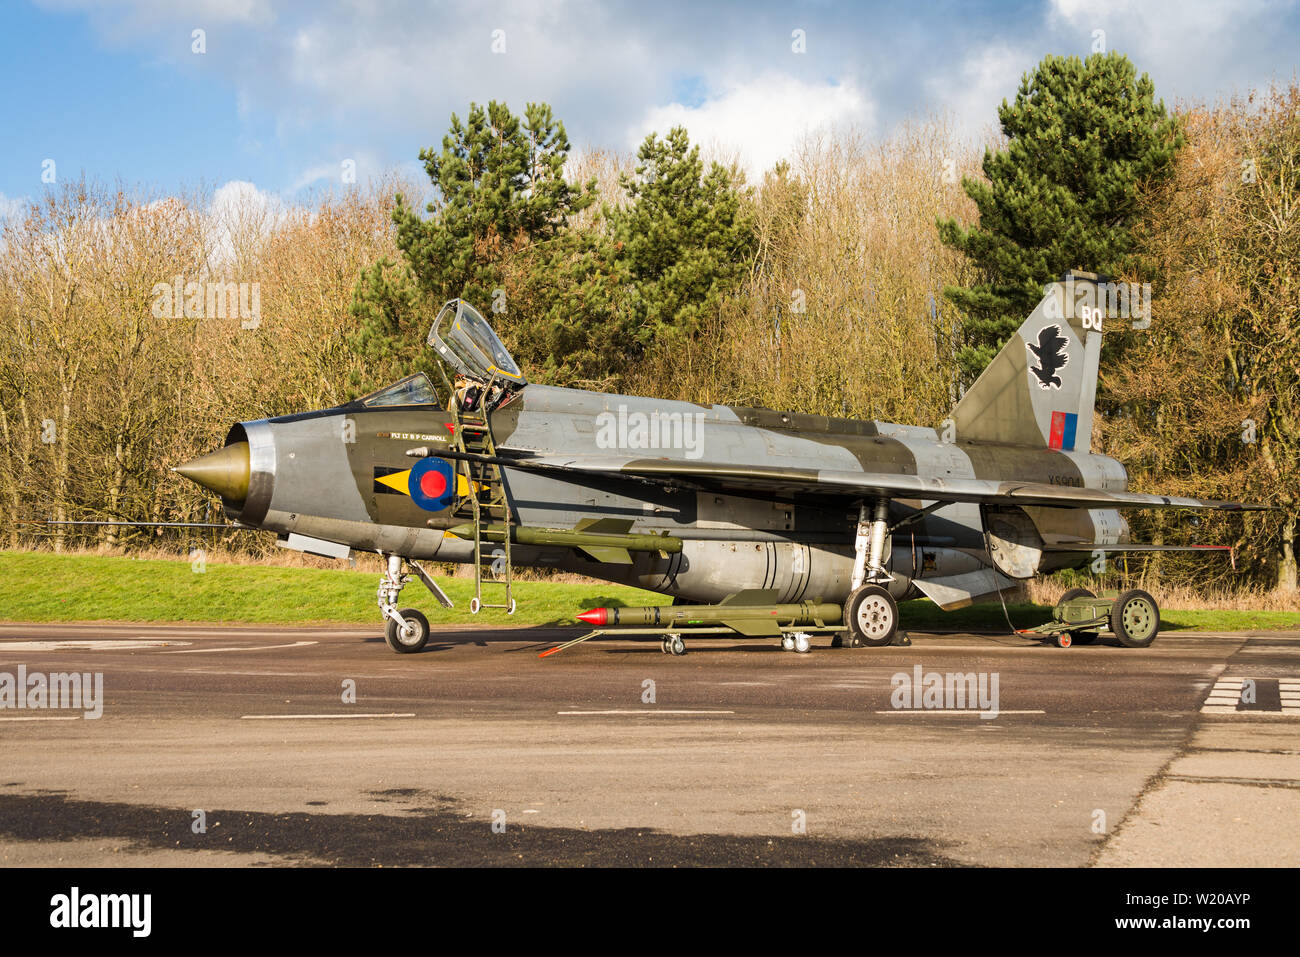 An English Electric Lightning Cold War fighter jet of the Royal Air Force at the Bruntingthorpe Aerodrome and Proving Ground. - Stock Image